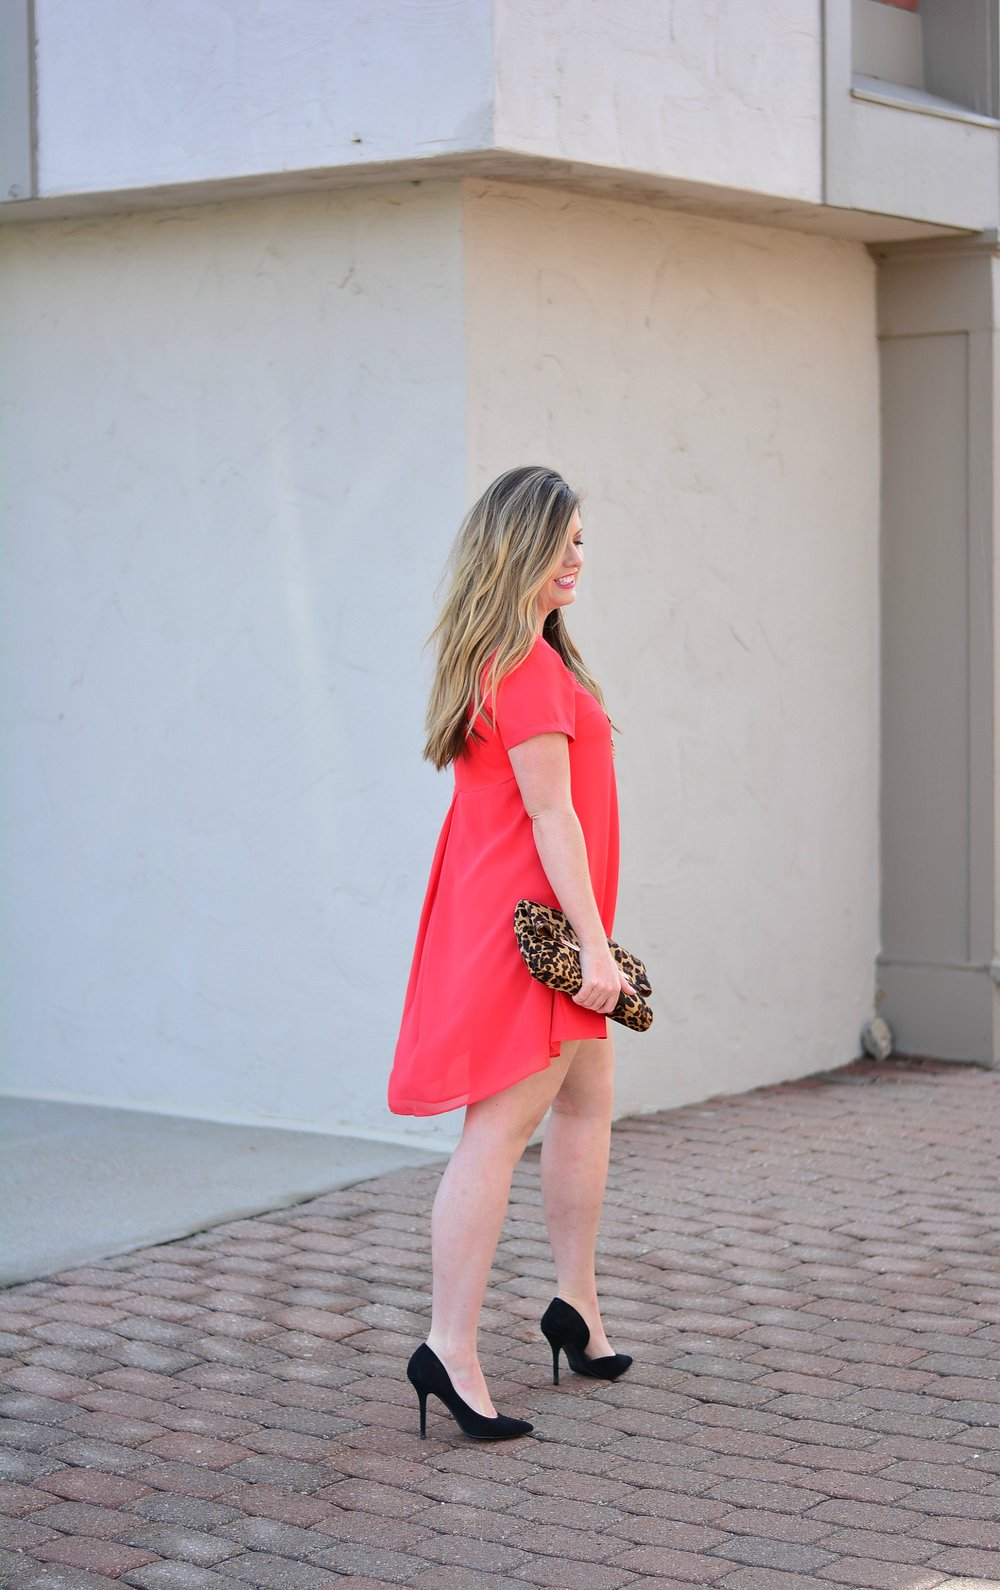 Red dress outfit